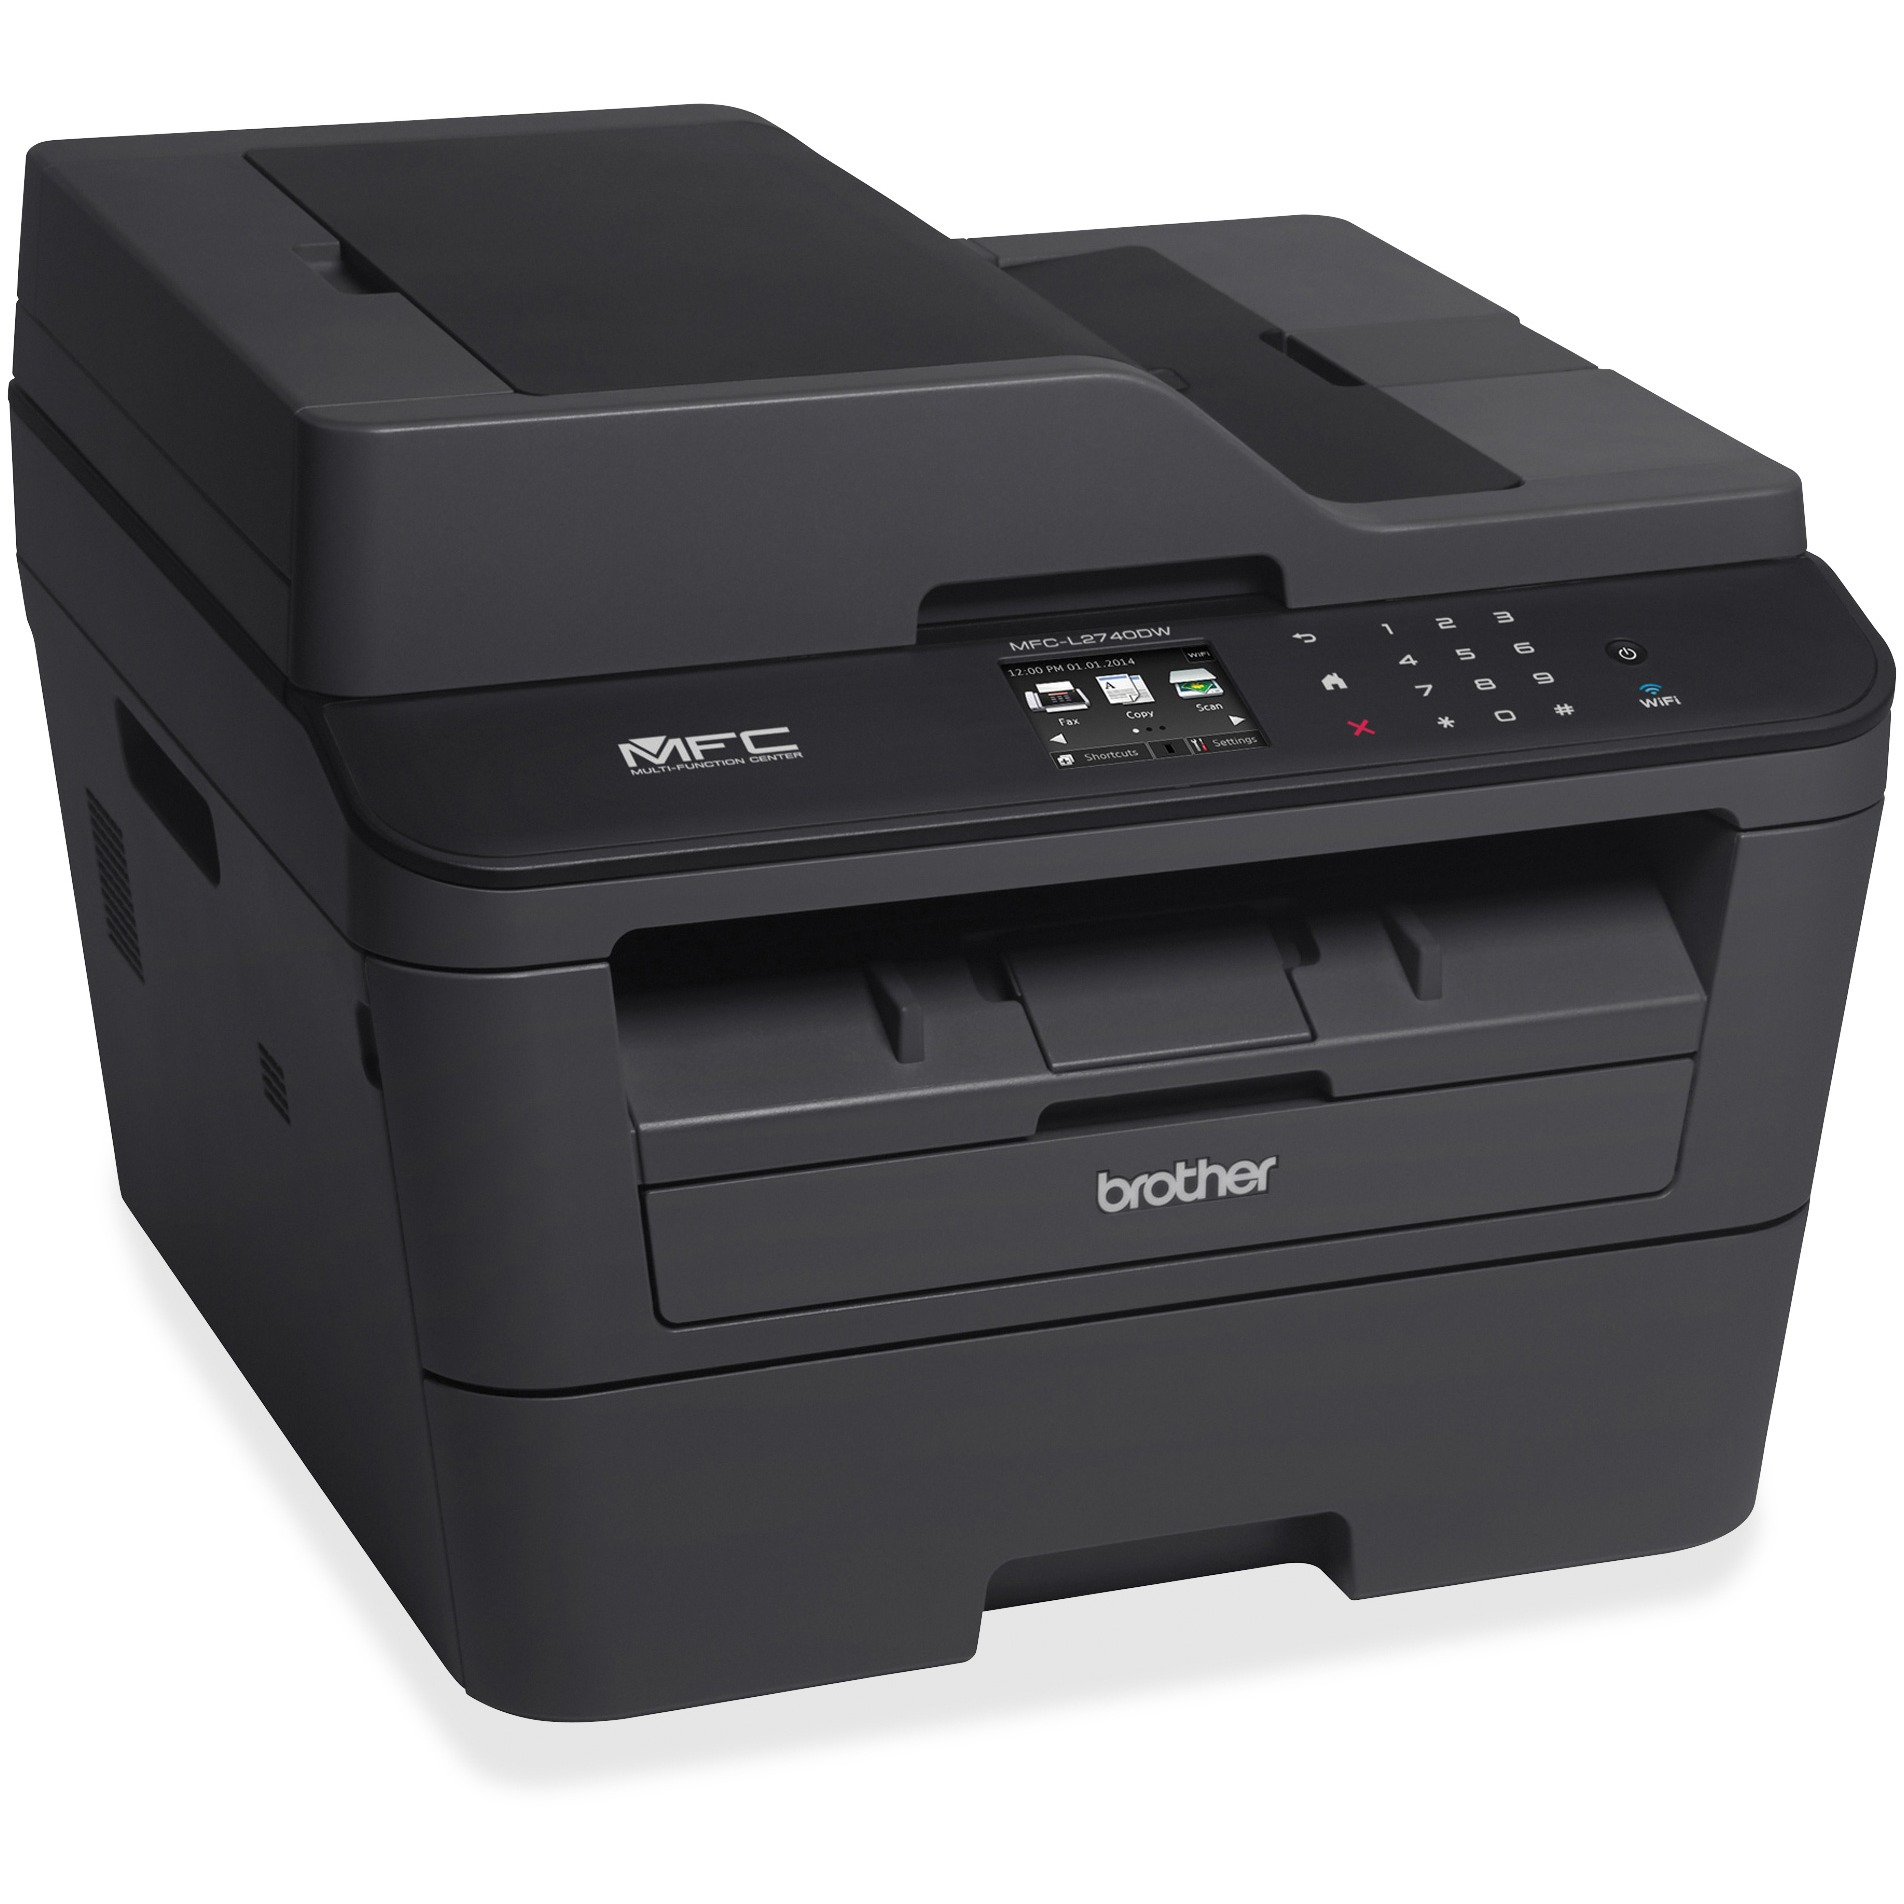 MFC-L2740DW All-in-one Laser Printer